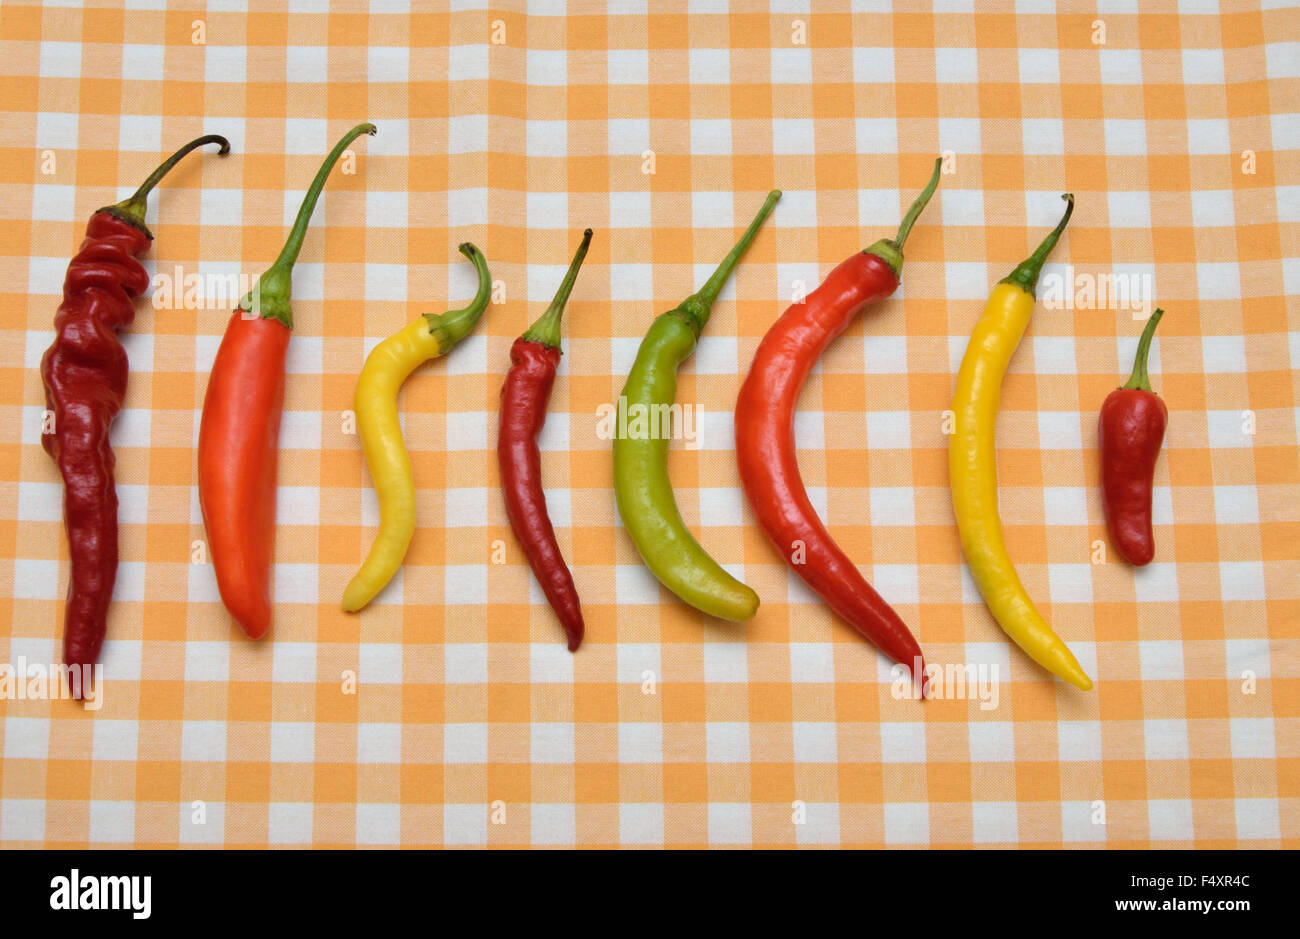 Red, Orange, Green And Yellow Hot Chili Peppers On White Yellow Tablecloth